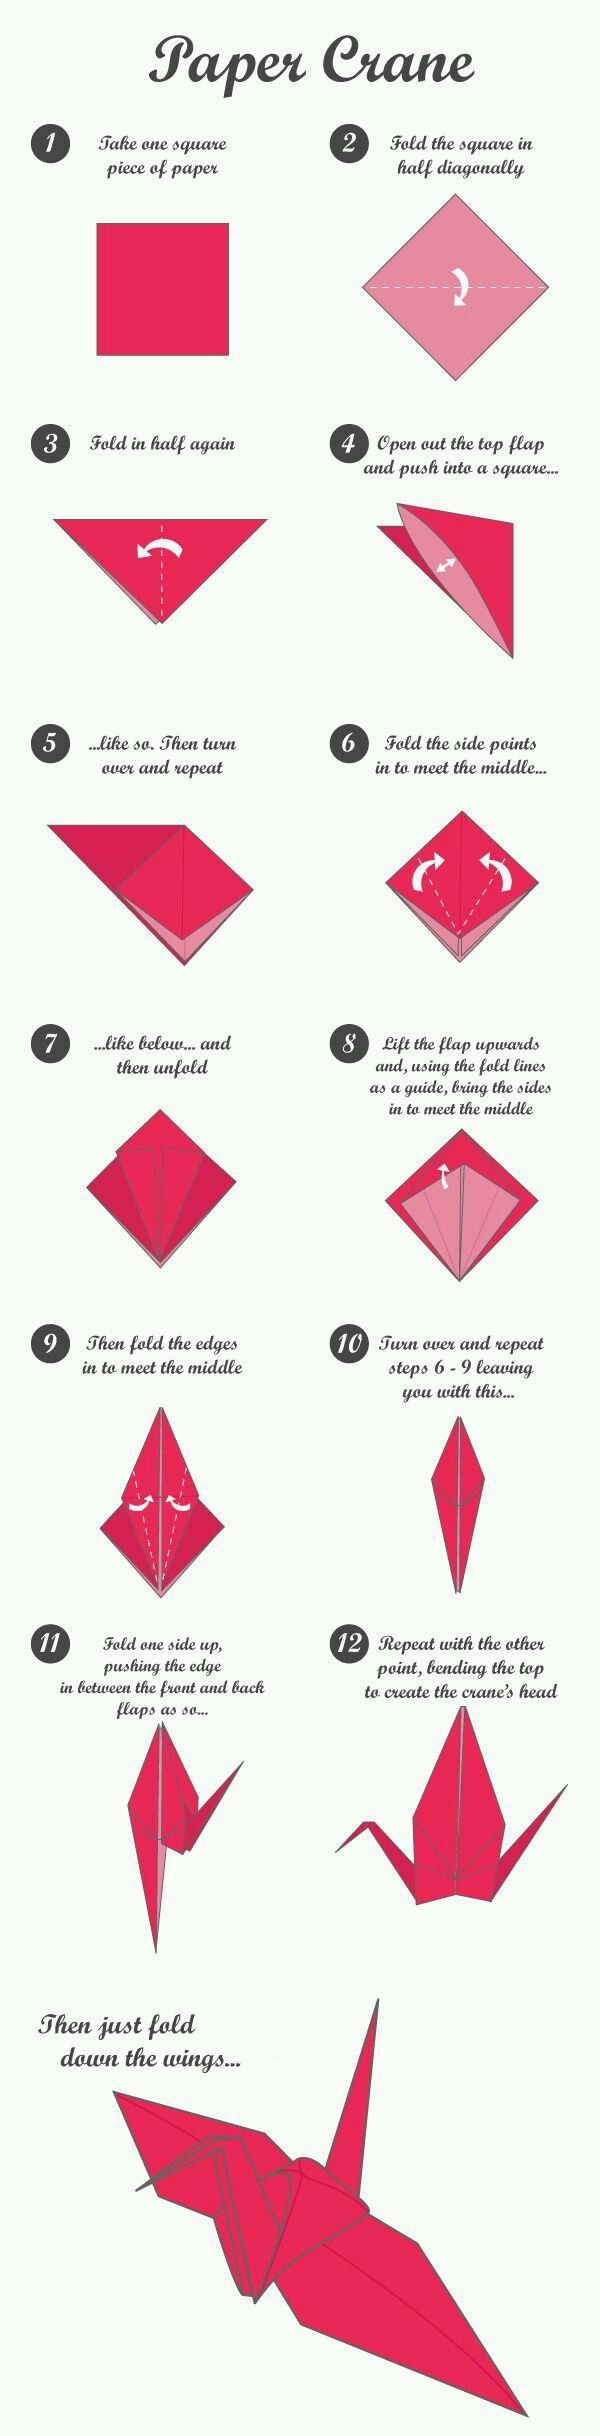 48 Best Origami Images On Pinterest Paper Boats And 3d Swan Diagram Http Howtoorigamicom Origamiswanhtml Diy Crane Tutorial Folding Craft Something I Aspire Too Hear The Is One Of Most Intimidating Creations